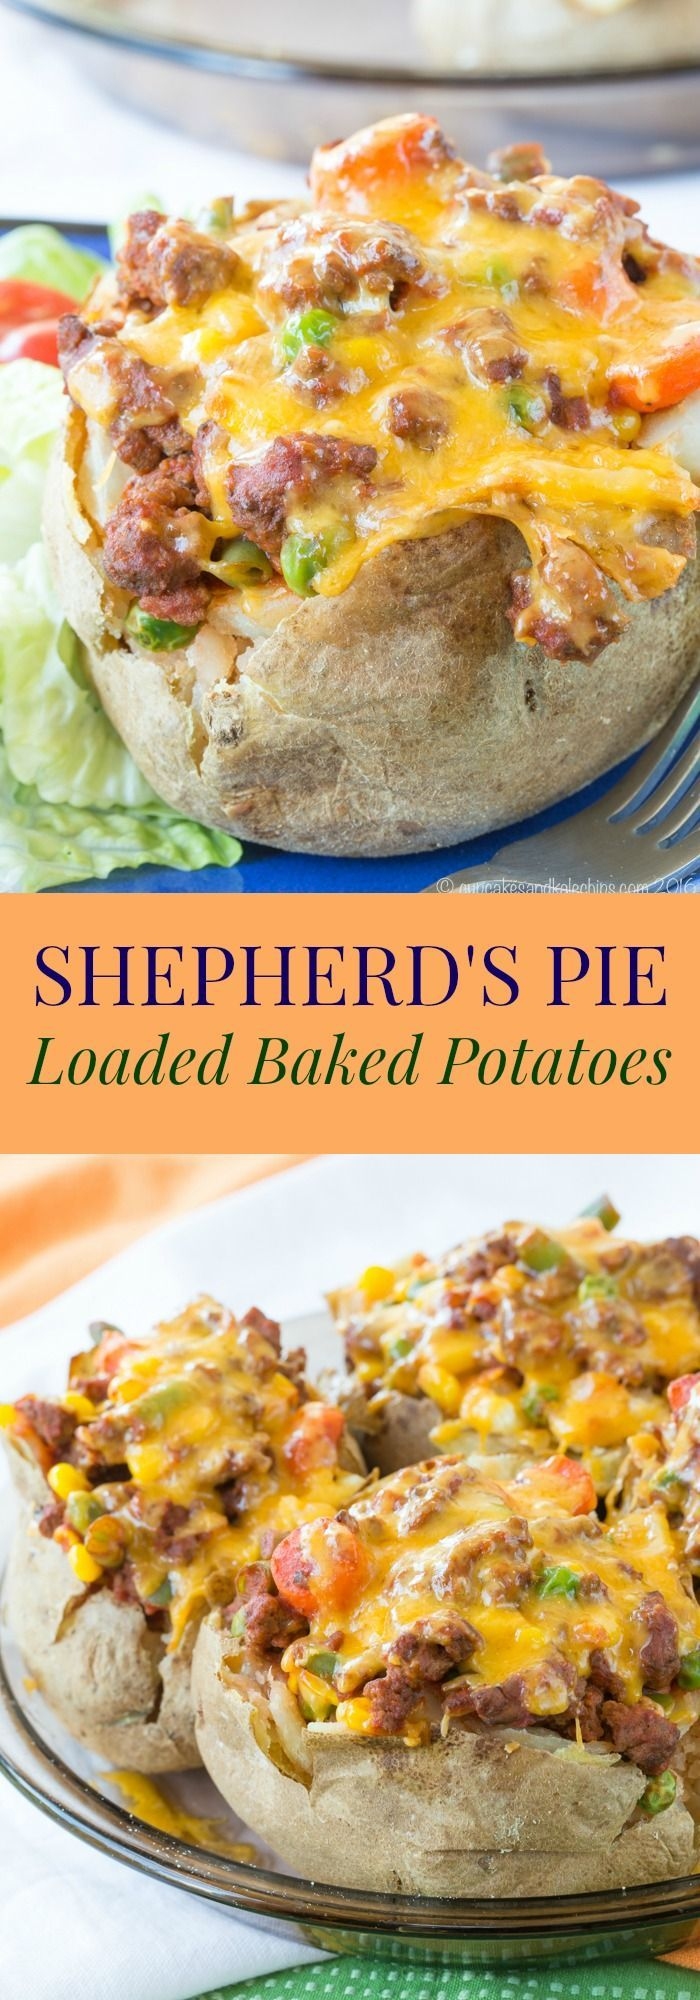 OMIT GARLIC AND USE SCALLION FOR FODMAP. Shepherd's Pie Loaded Baked Potatoes - a fun and easy twist on a classic recipe with a simple beef and vegetable filling for stuffed baked potatoes. | cupcakesandkalechips.com | gluten free